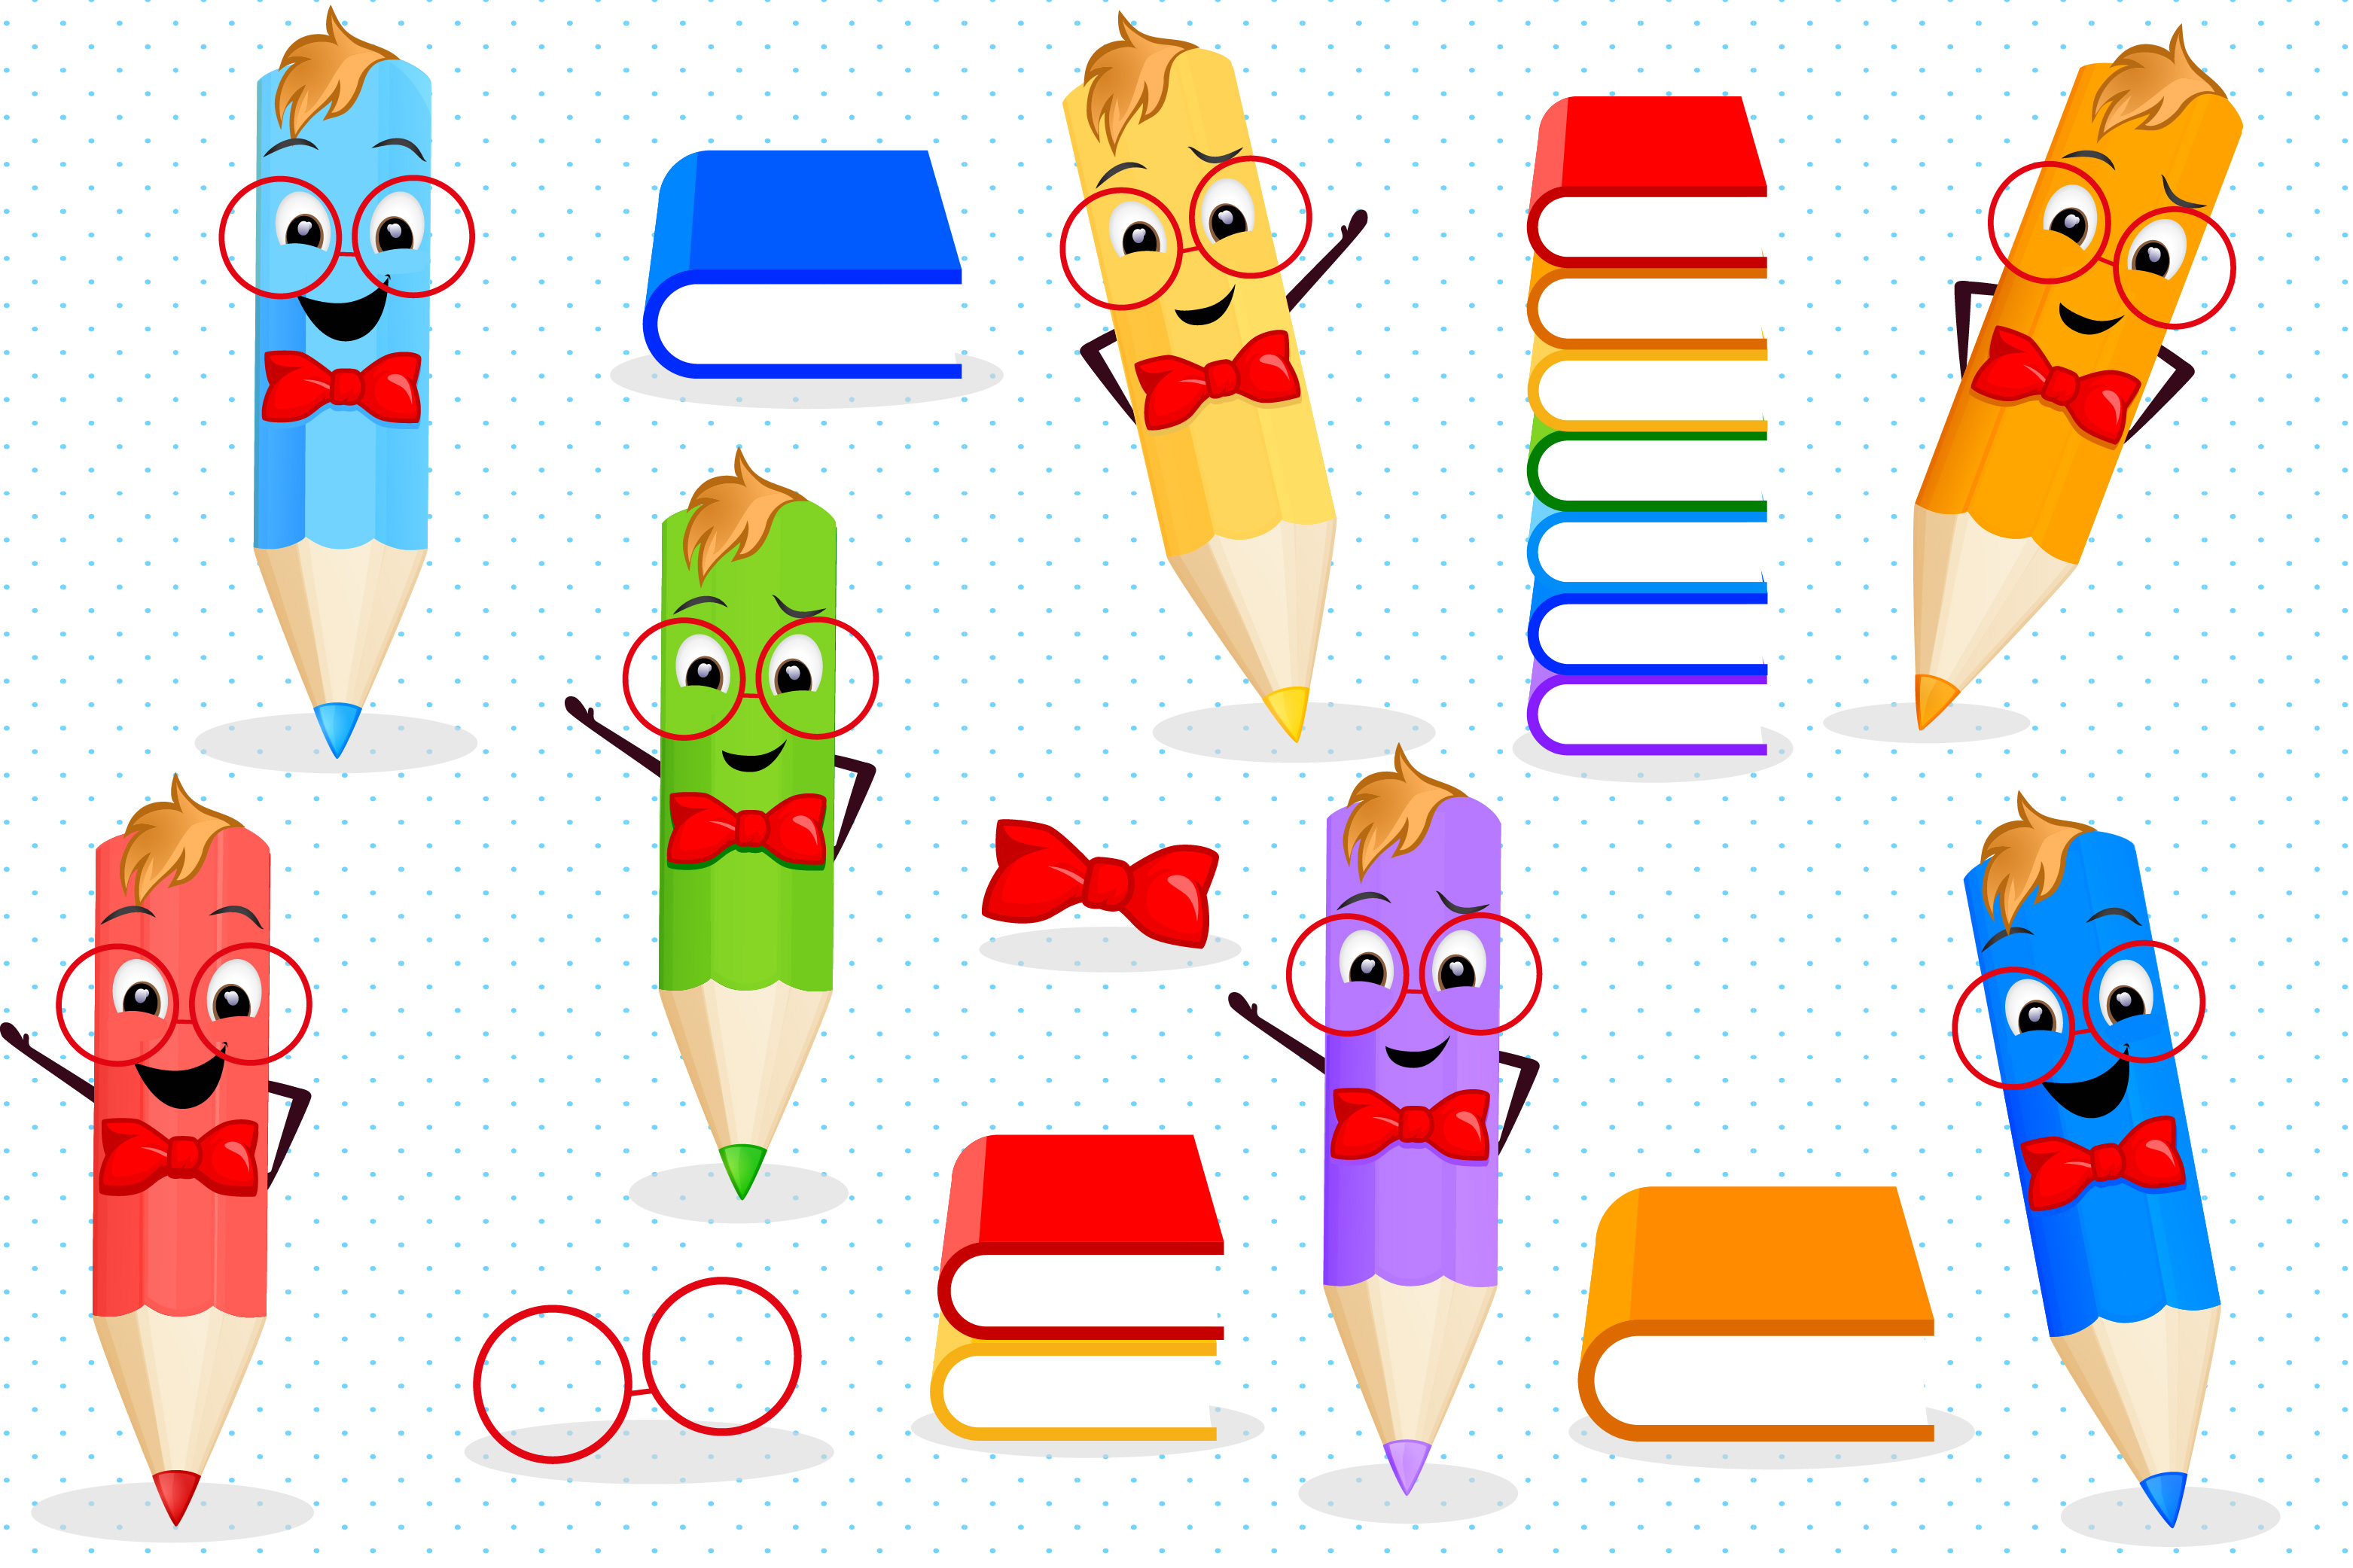 Back to school clipart, Pencils clipart